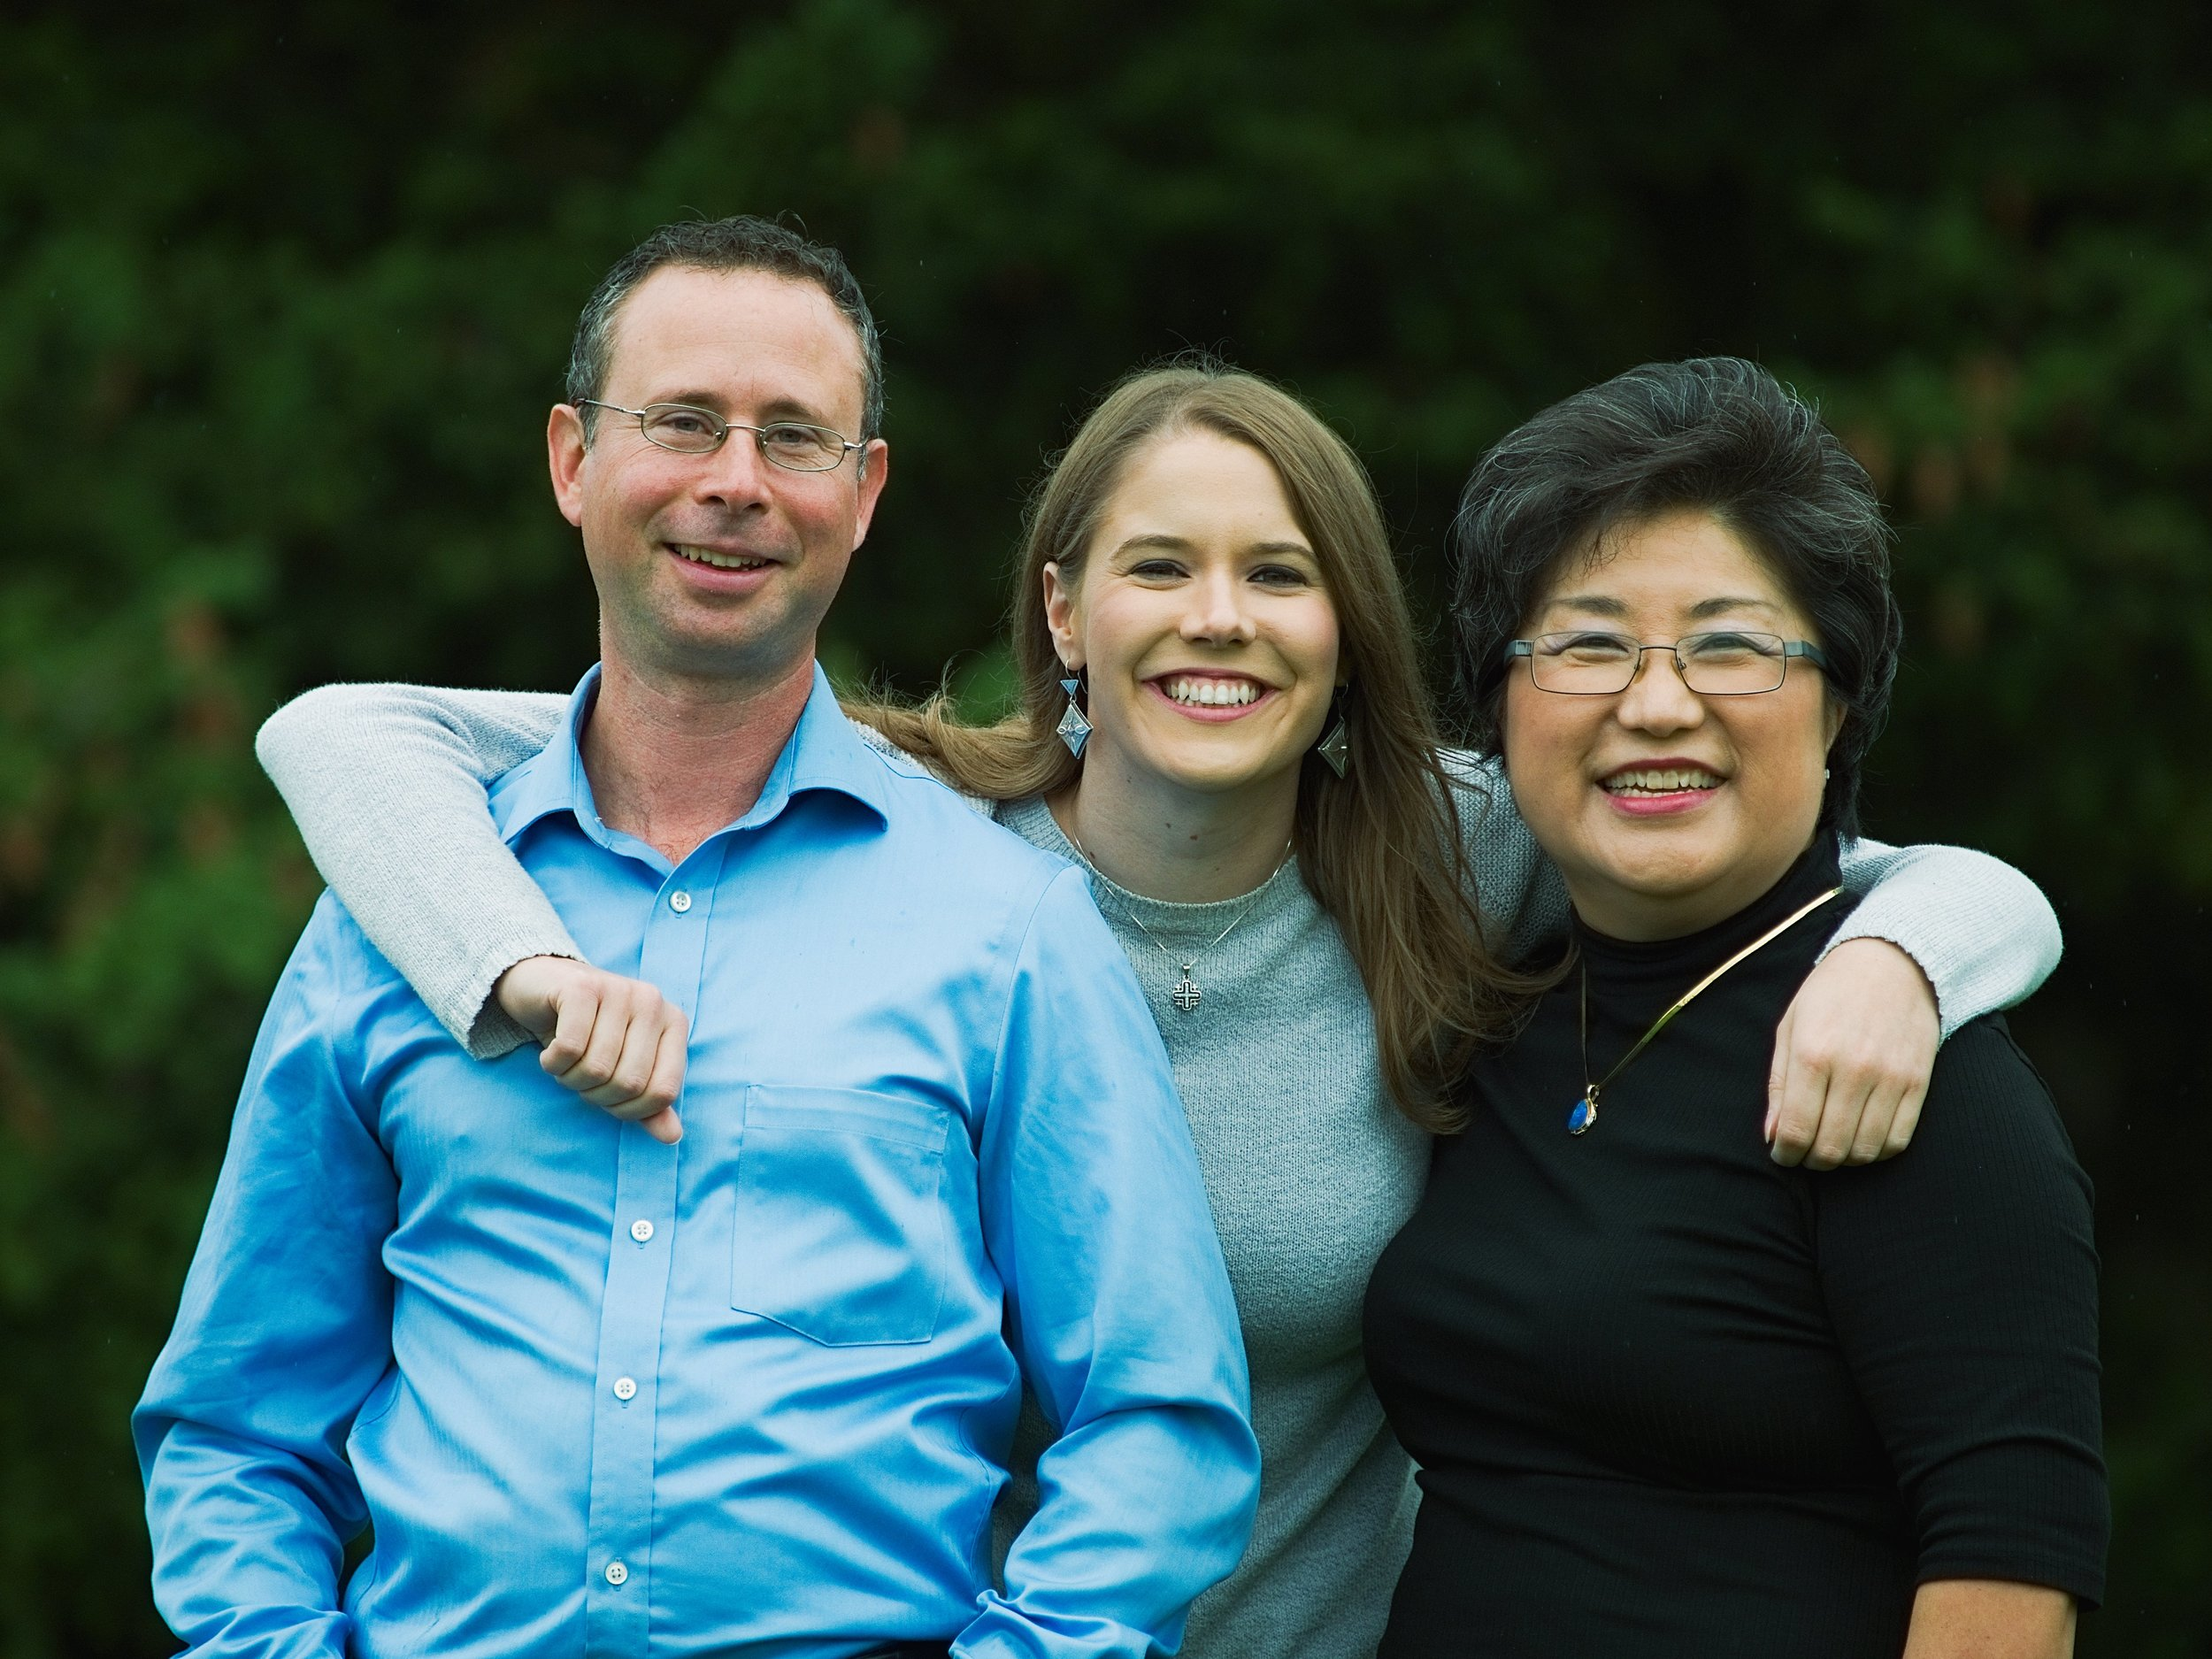 Jesse, State Rep Candidate Lauren Davis, State Rep Cindy Ryu (permission to reproduce is granted)